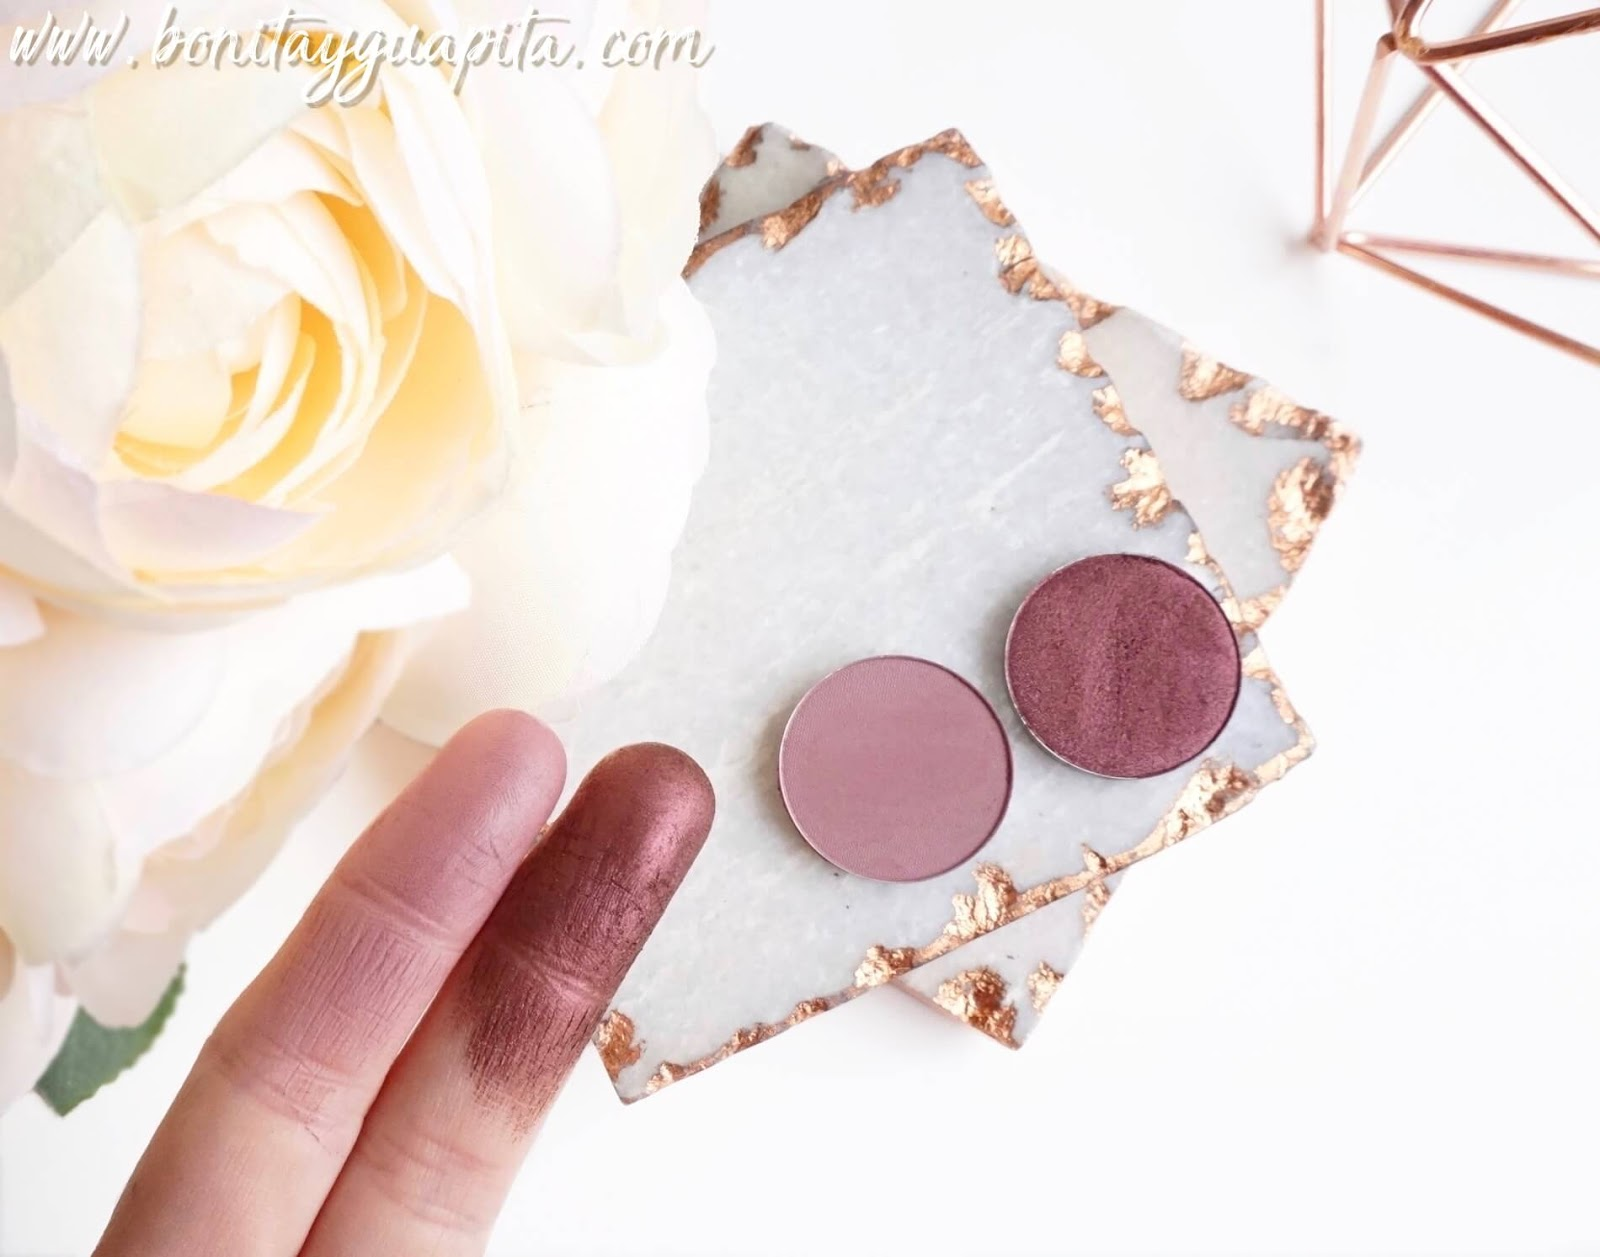 CIRCLE - DAPHNE Nº2 - NABLA swatch